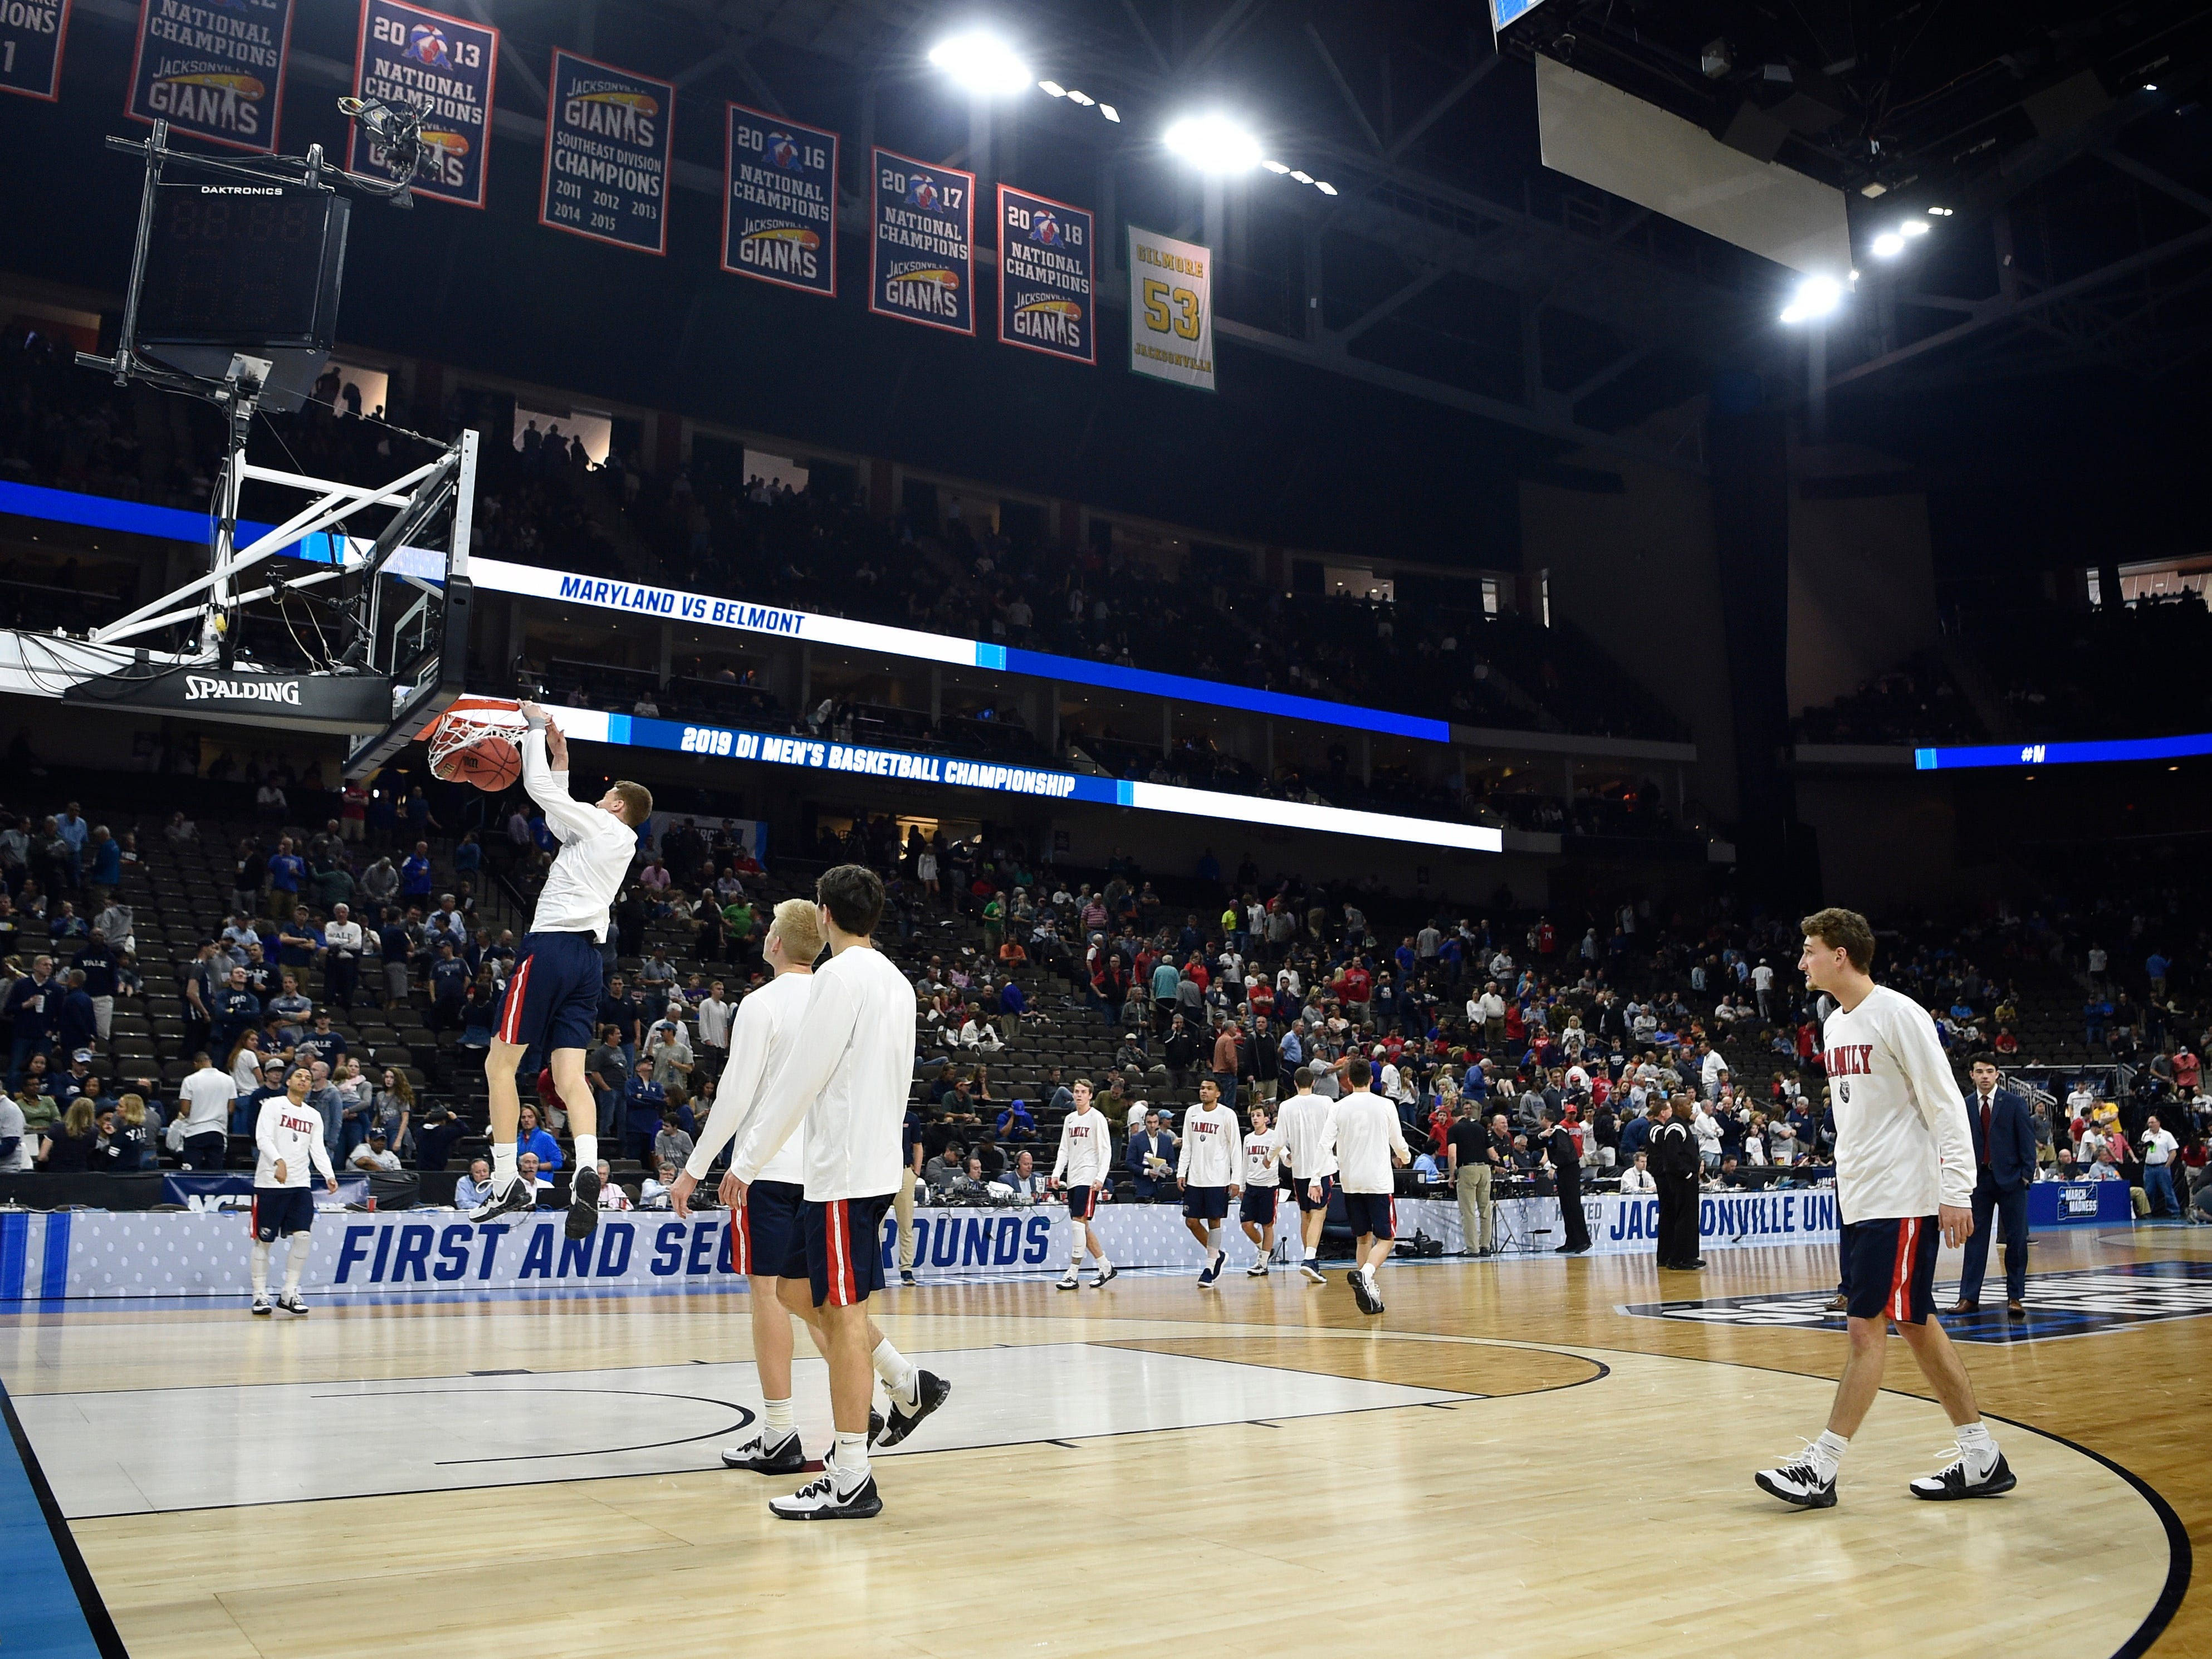 Belmont players warm up before the start of the first-round NCAA college basketball tournament game against Maryland at VyStar Veterans Memorial Arena in Jacksonville, Fla., Thursday, March 21, 2019.